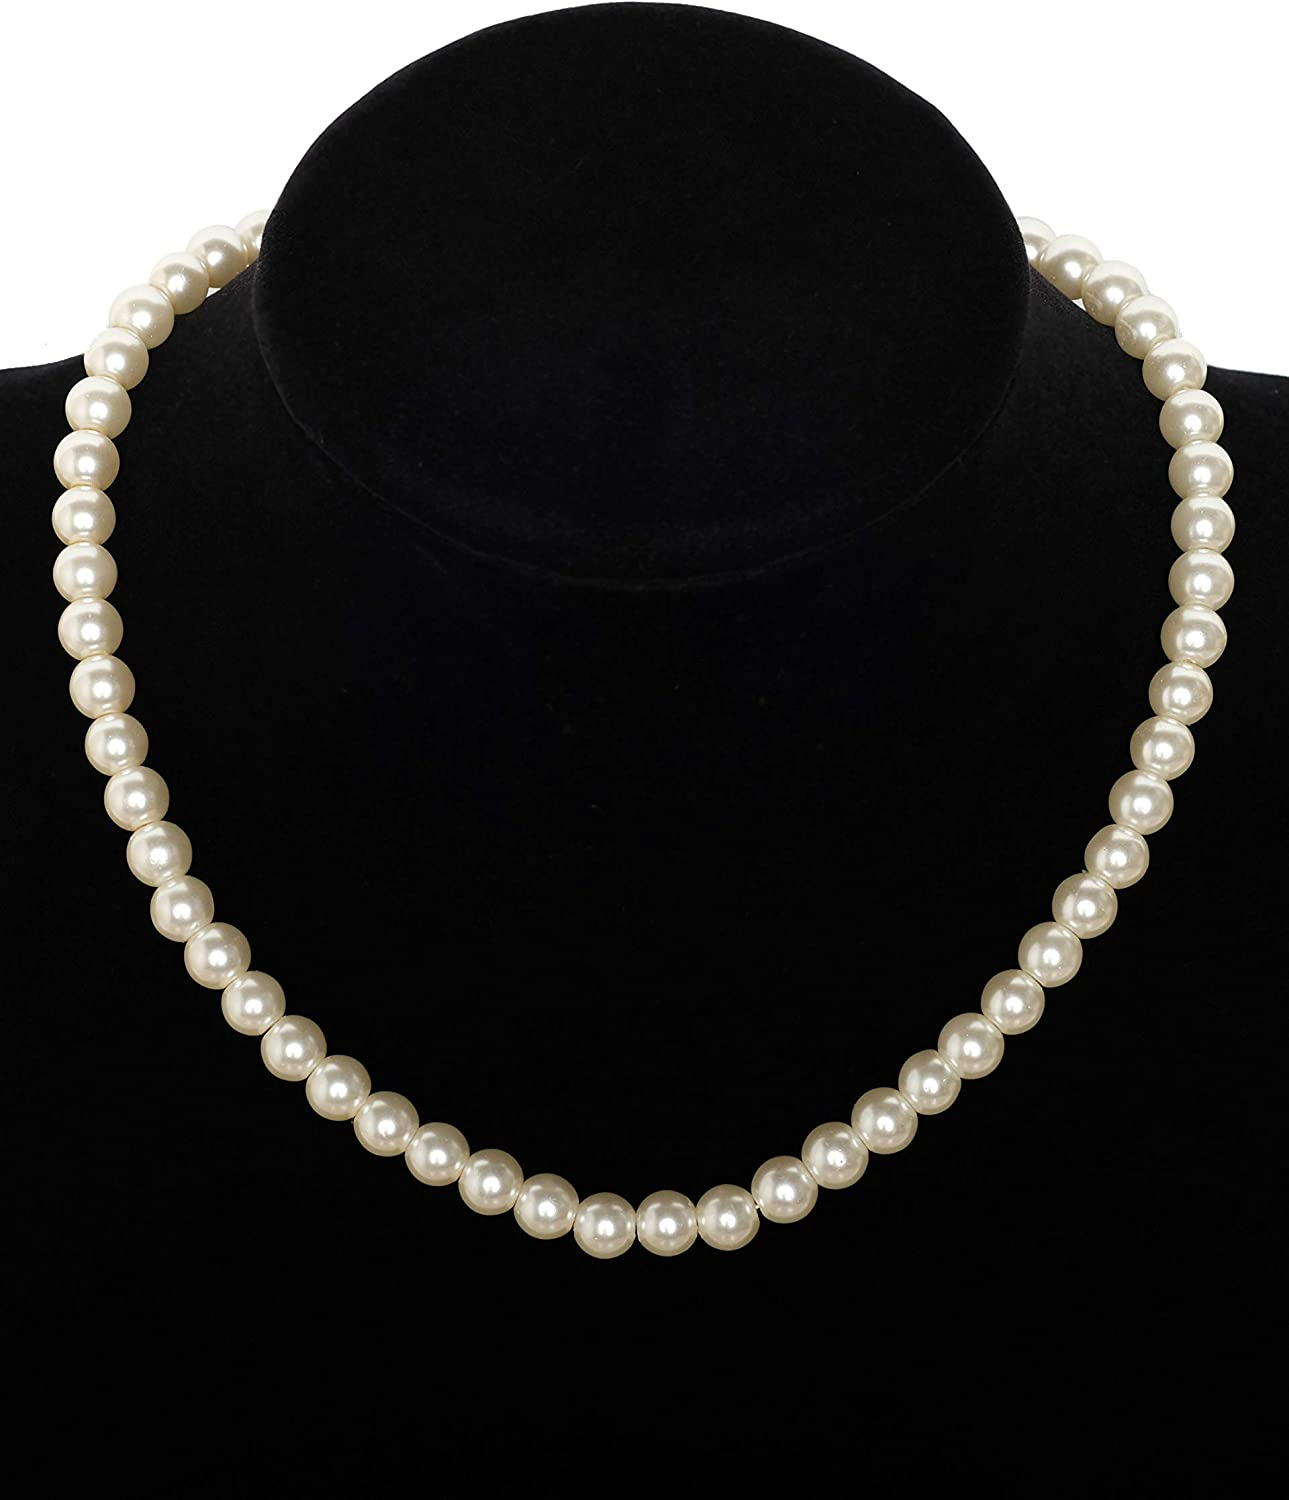 Zivyes Faux Pearl Necklace Pearl Choker Necklace Pearl Necklace Strand 1920s Flapper Beads for Gatsby Costume